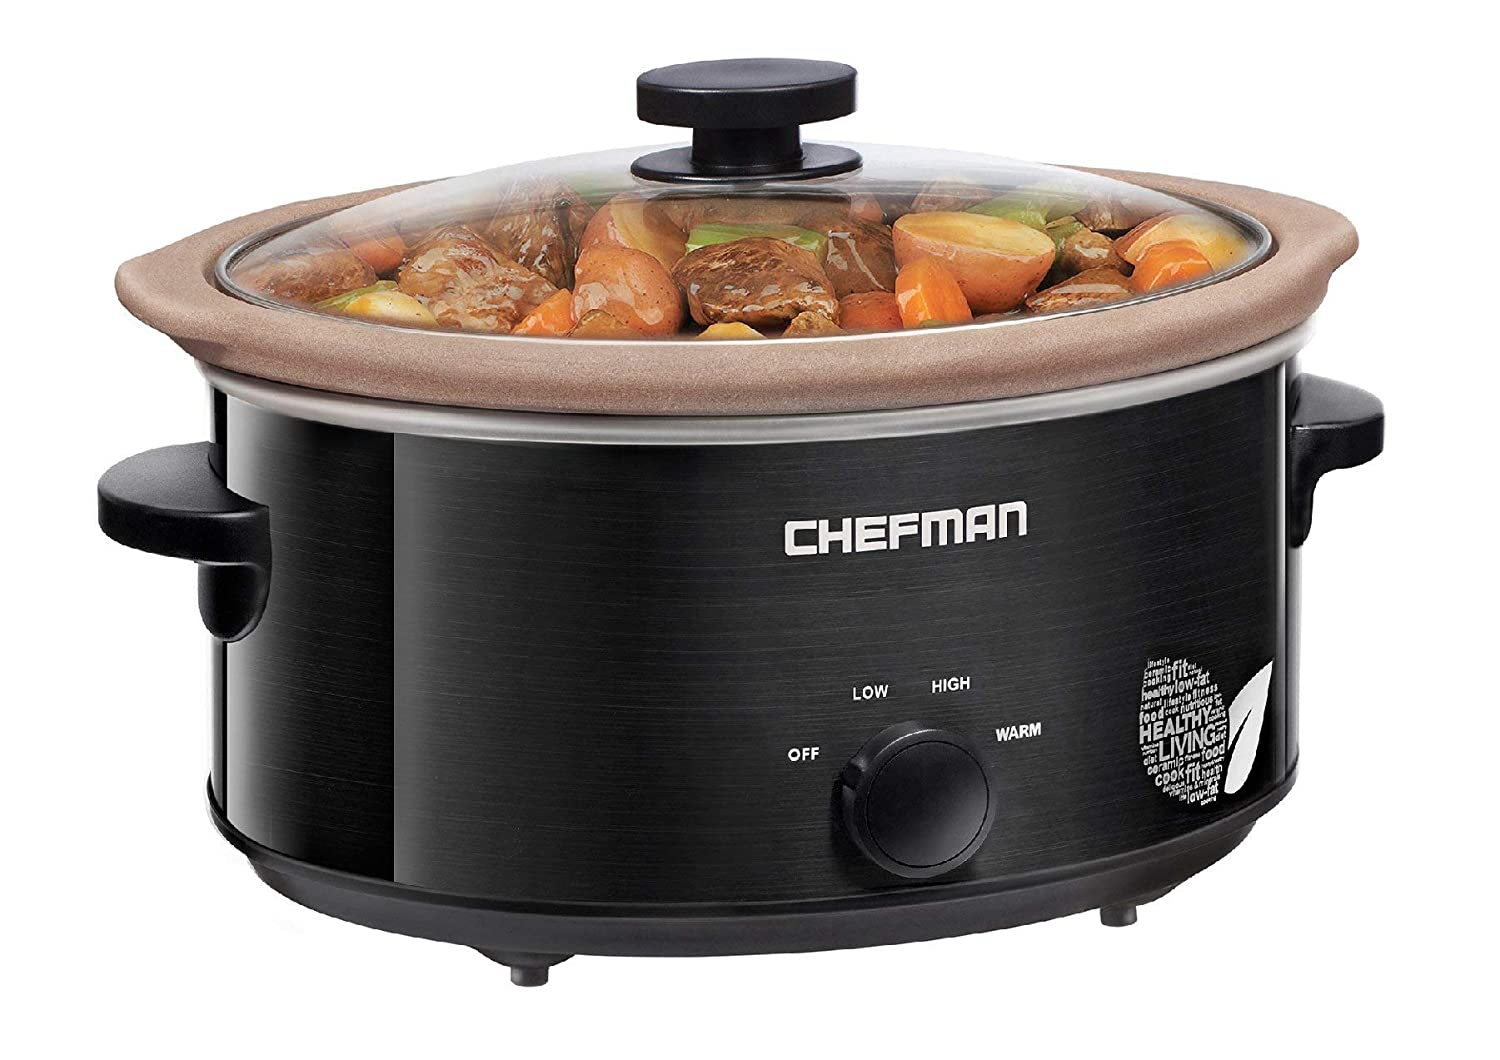 Chefman Slow Cooker, All-Natural XL 5 Qt. Pot, Glaze-Free, Chemical-Free Stovetop, Oven, Dishwasher Safe Crock; The Only Naturally Nonstick Paleo Certified Slow Cooker, Free Recipes Included (Renewed)